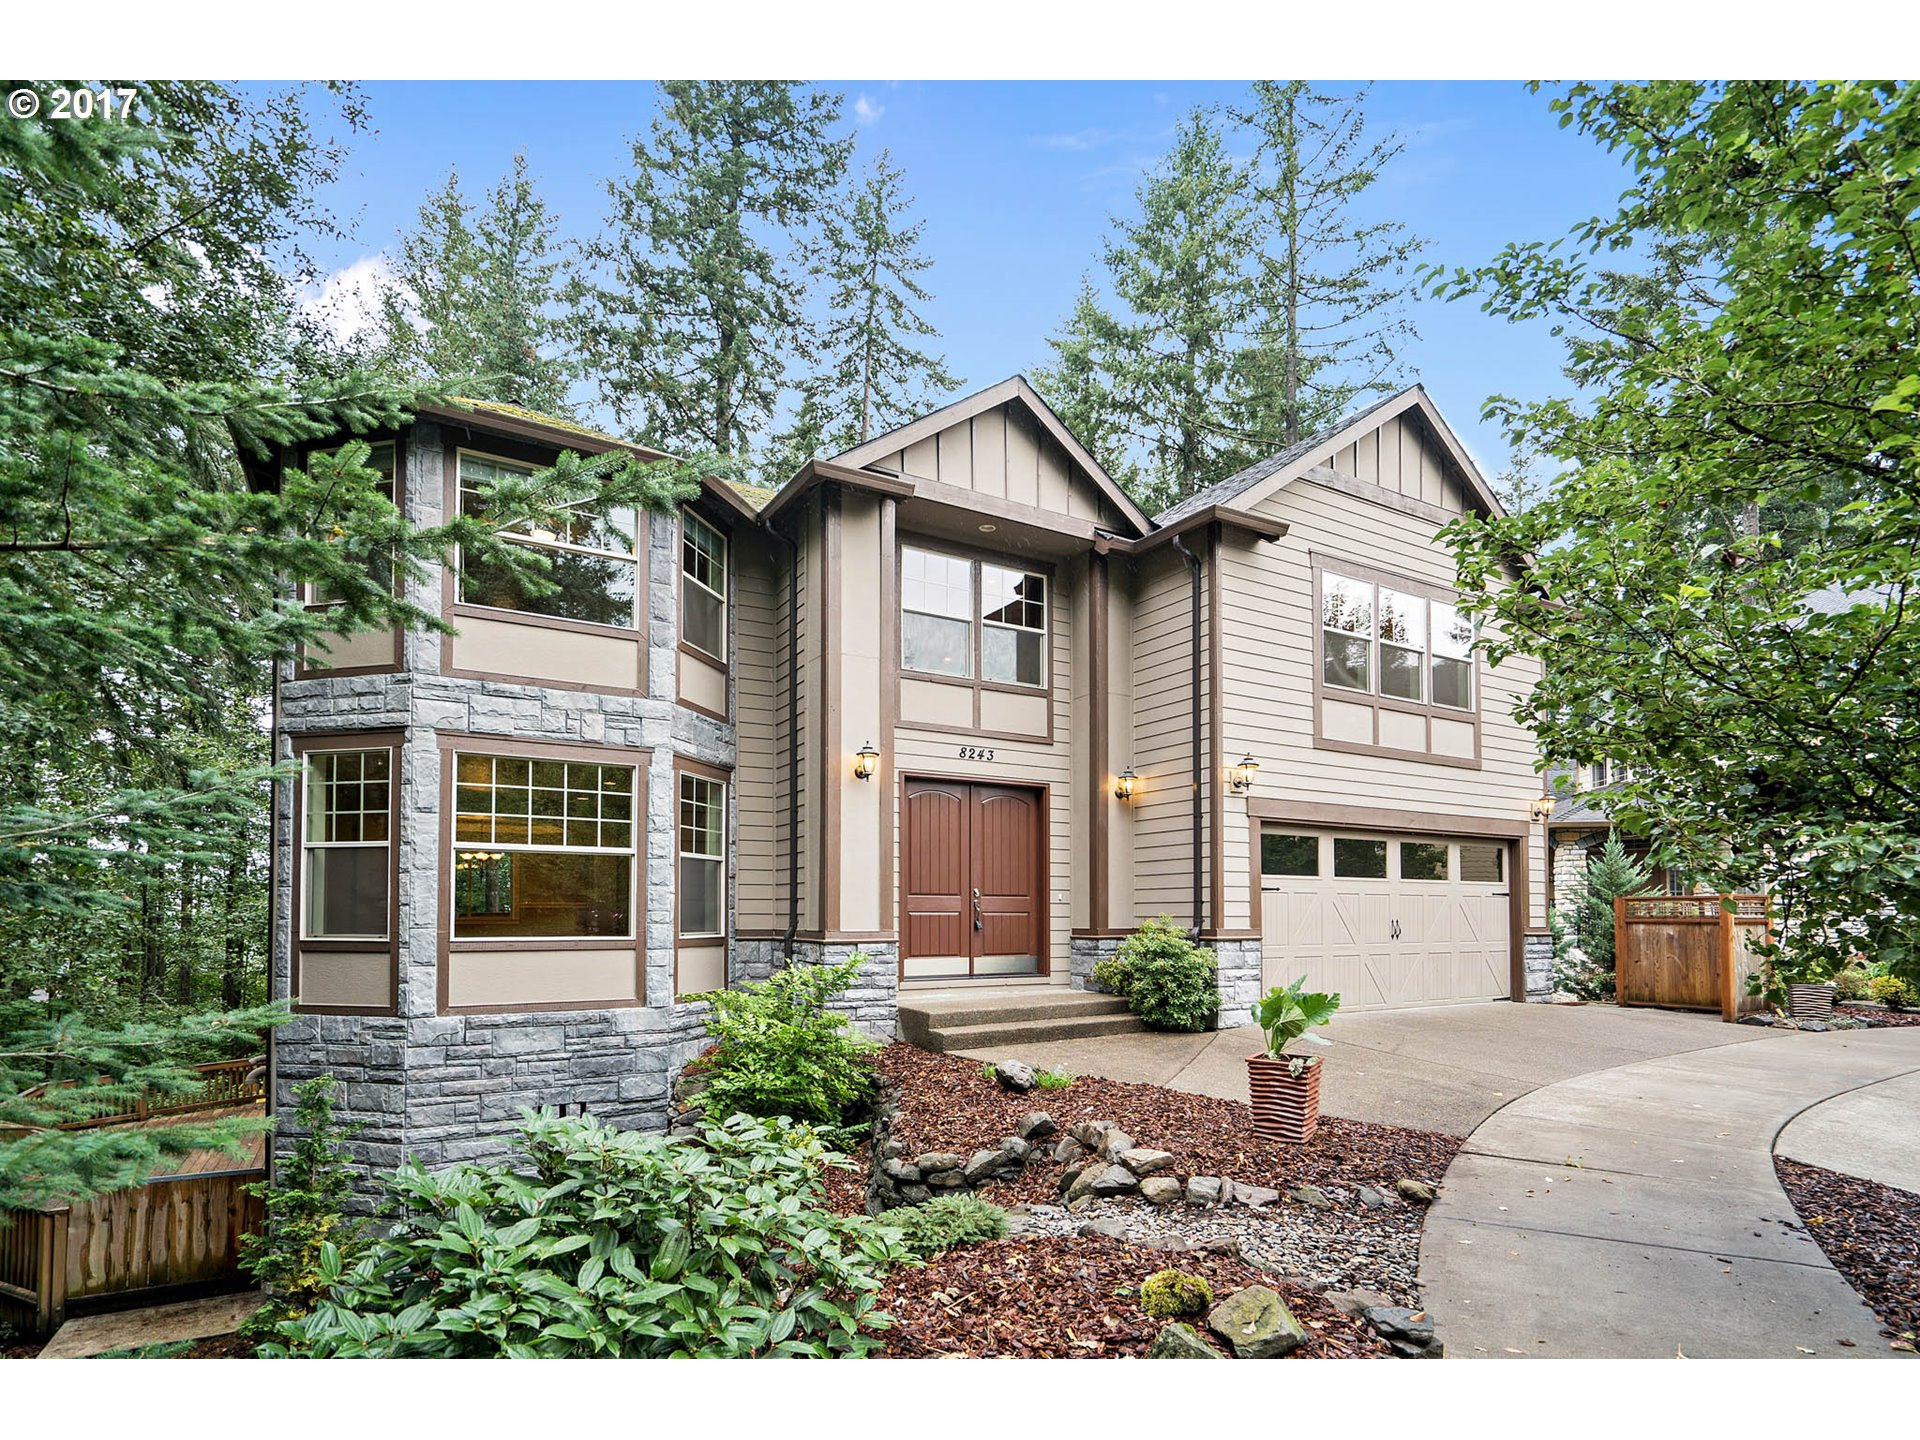 8243 SE PINERIDGE CT, Portland OR 97236